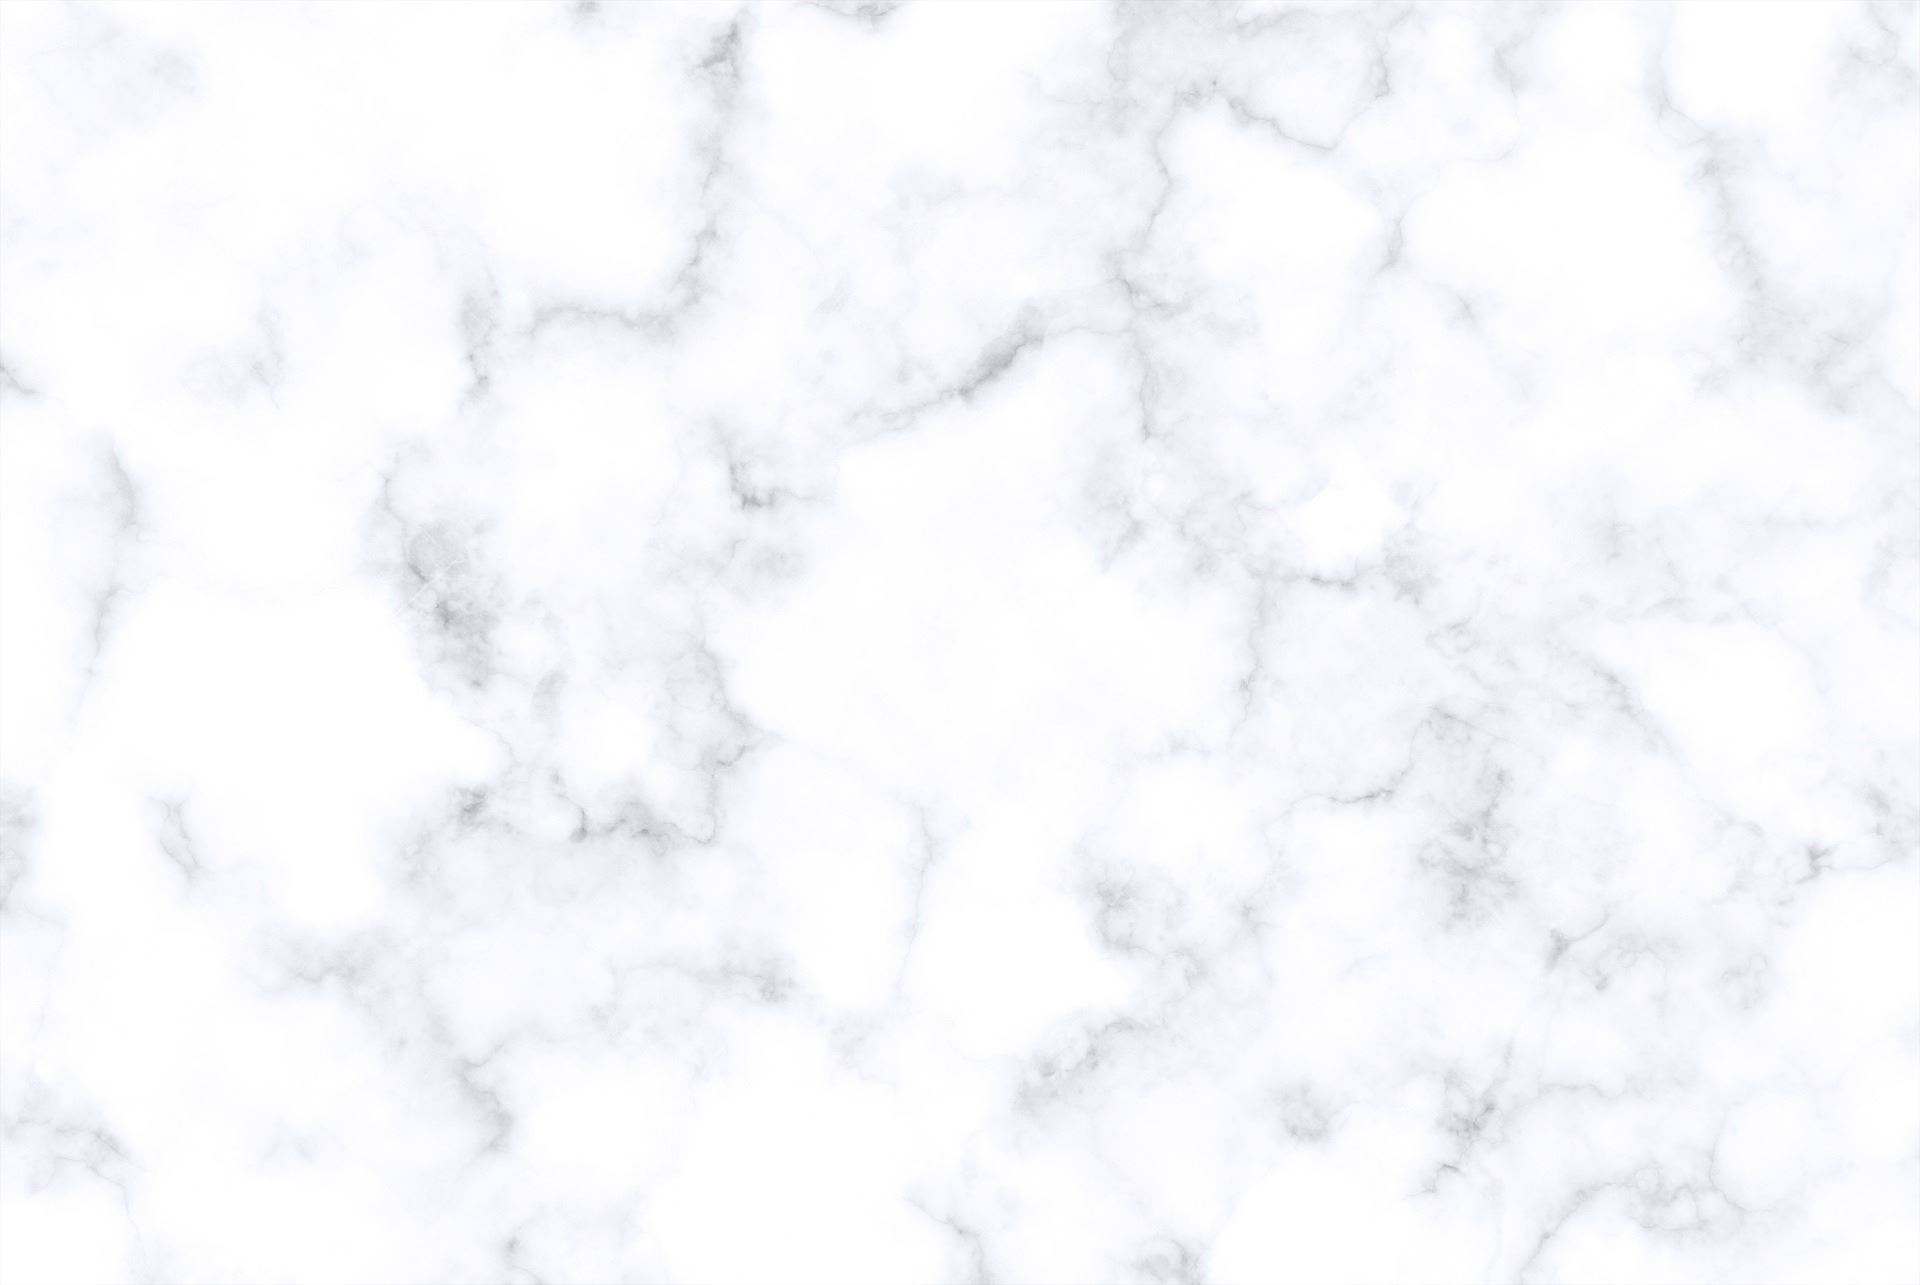 marble-2371776_1920-1